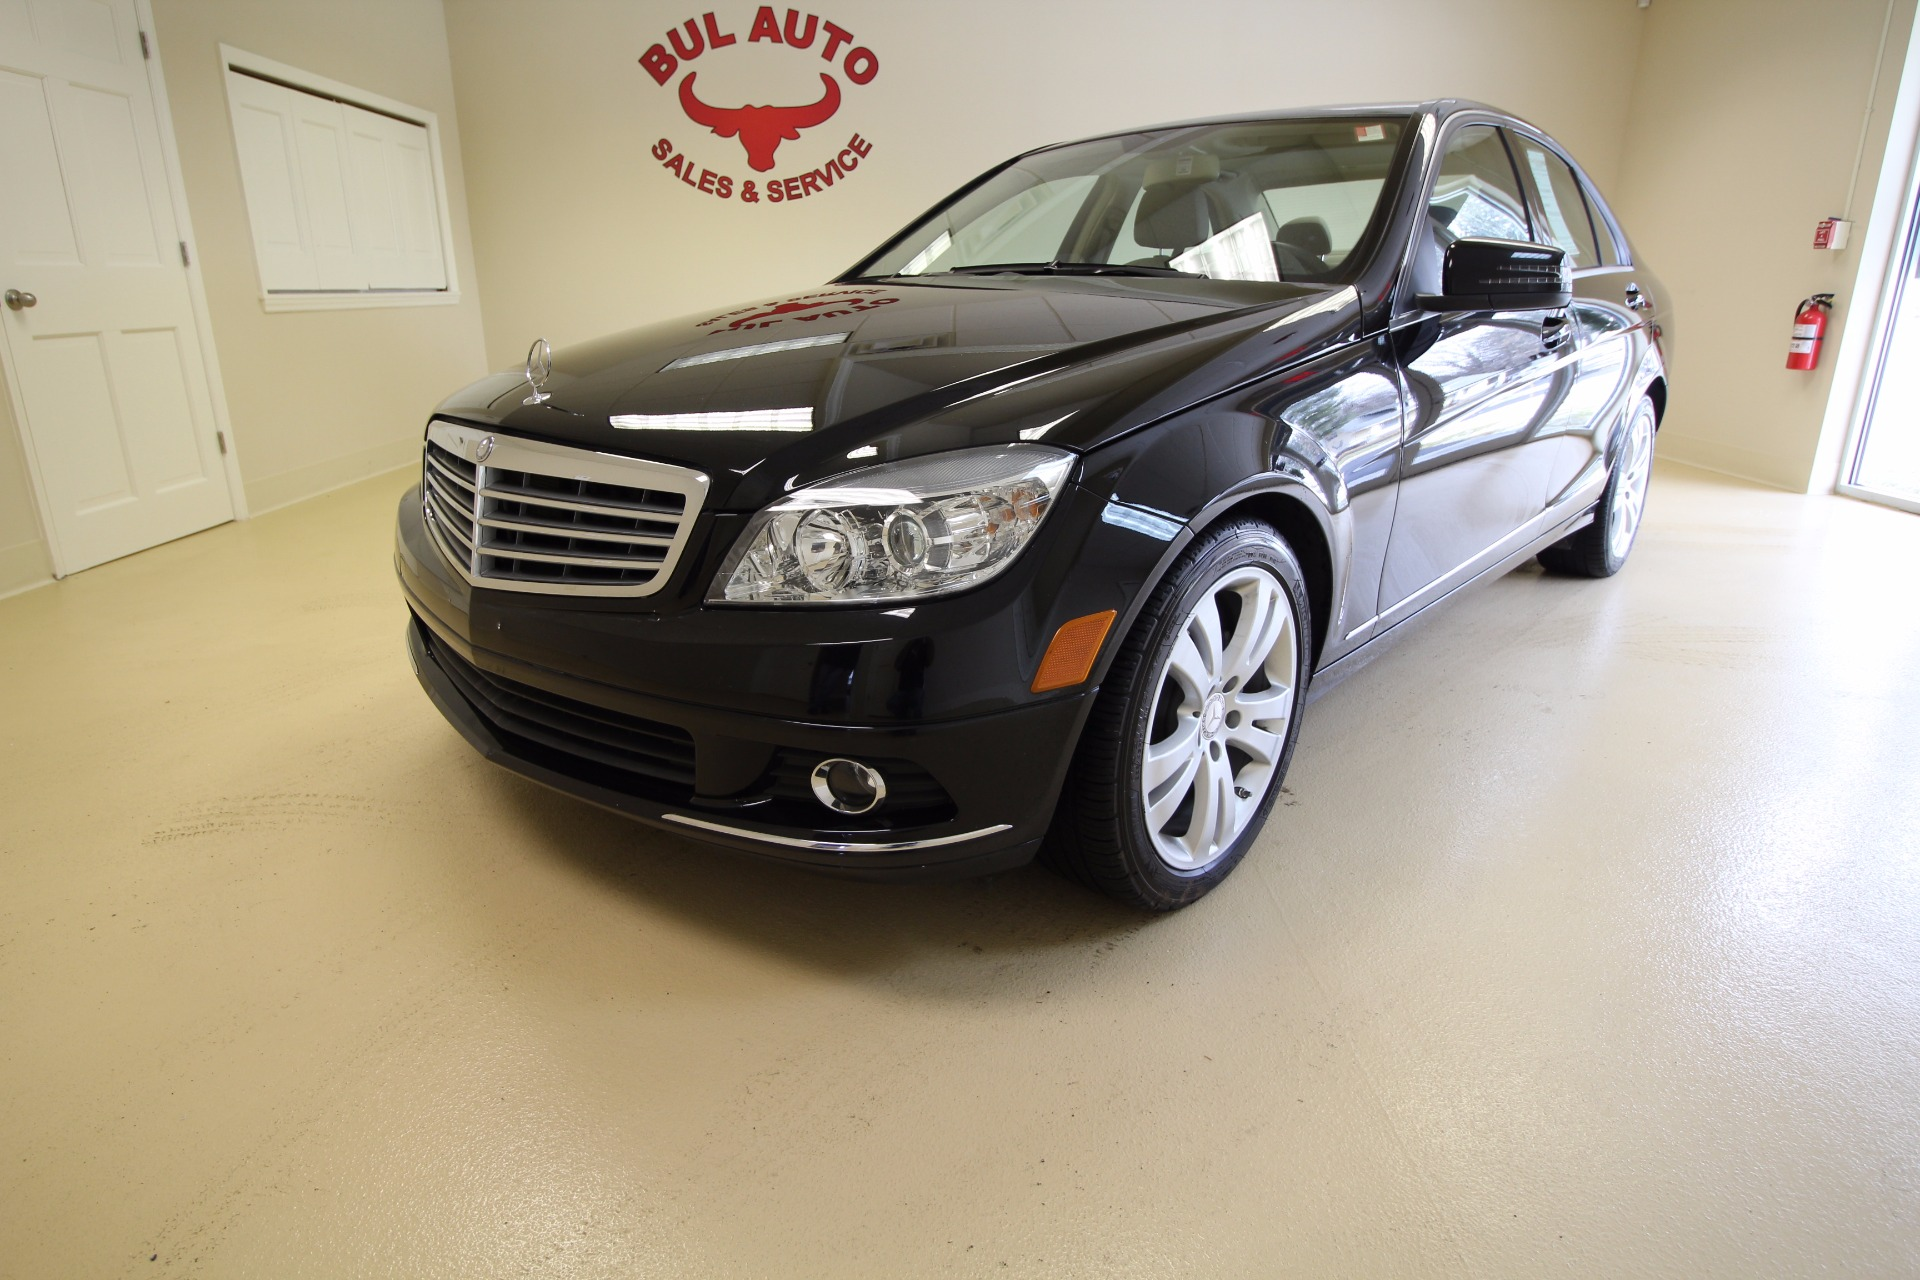 2011 mercedes benz c class c300 4matic luxury sedan stock 16341 for sale near albany ny ny. Black Bedroom Furniture Sets. Home Design Ideas